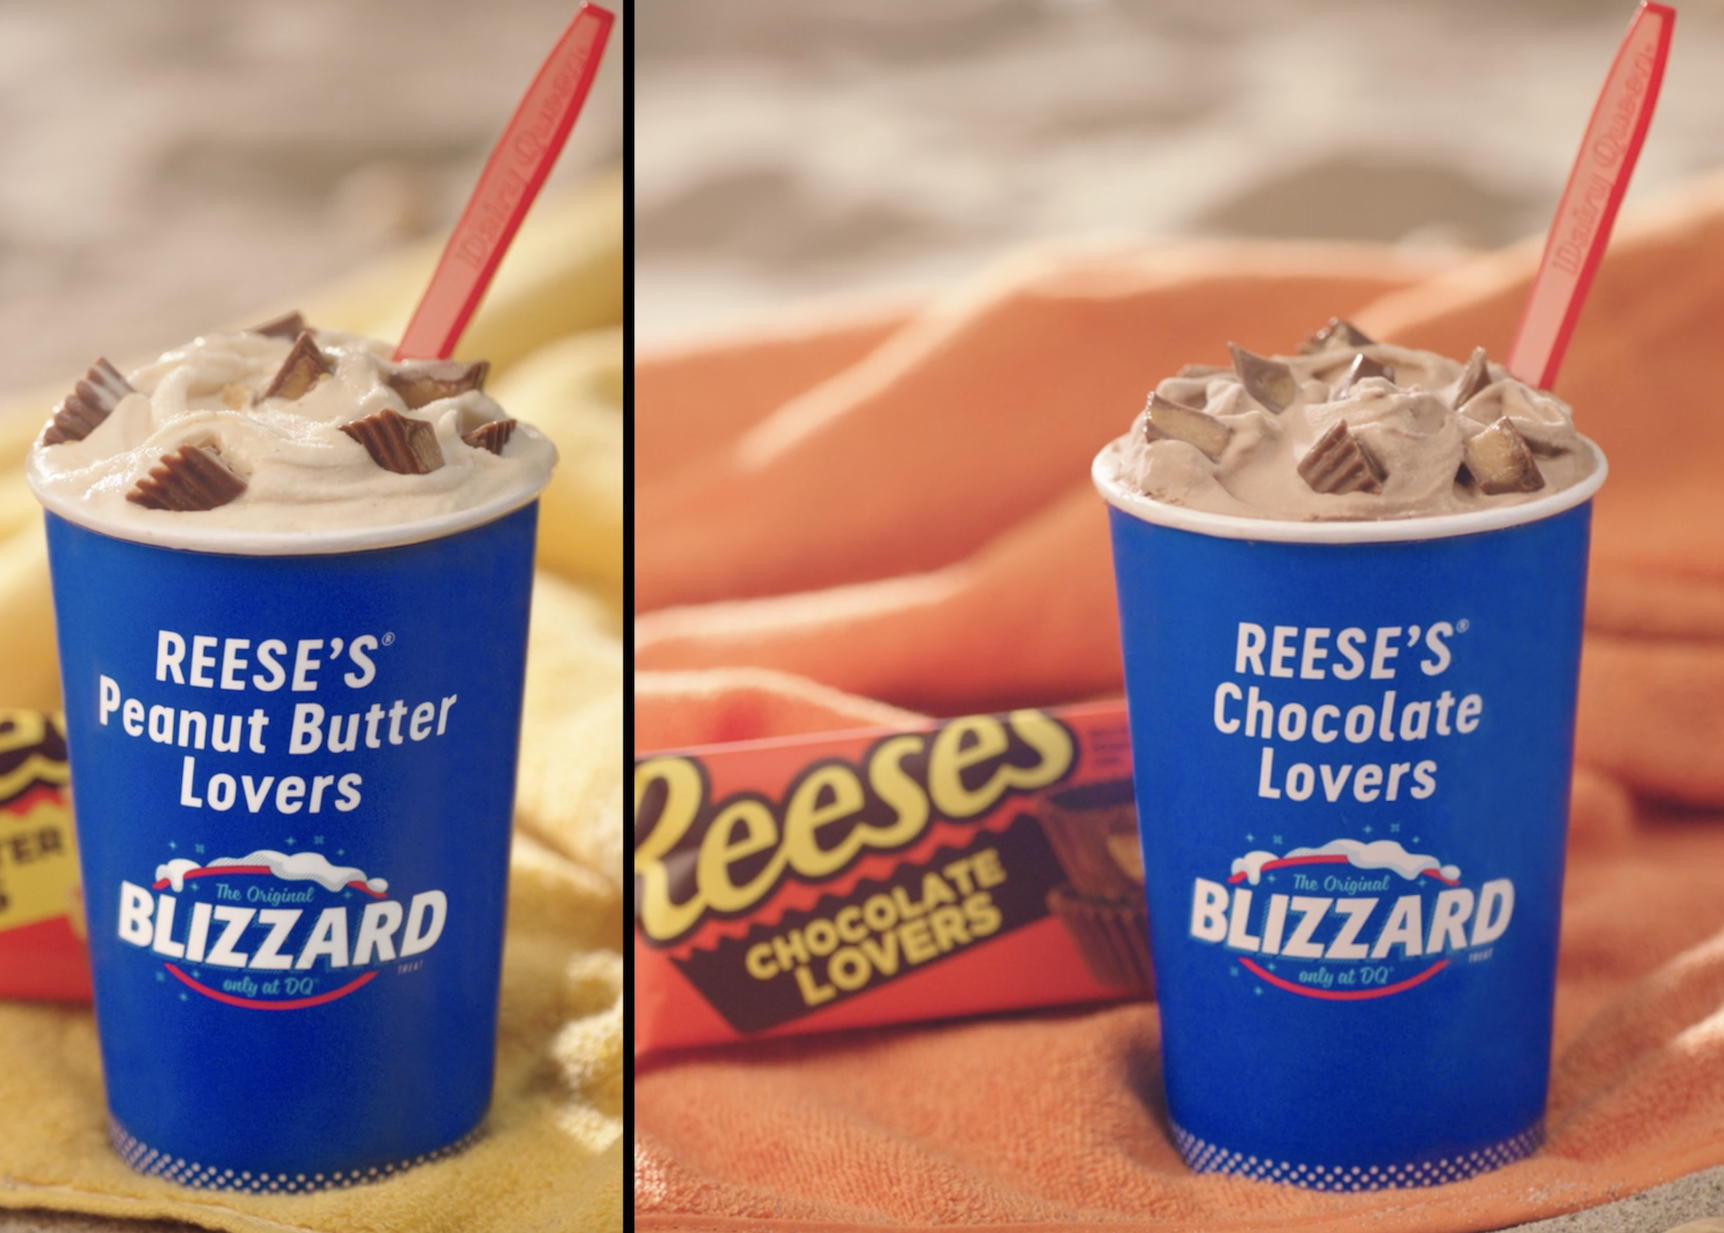 PSA: Dairy Queen Just Debuted Two New Reese's-Inspired Blizzards